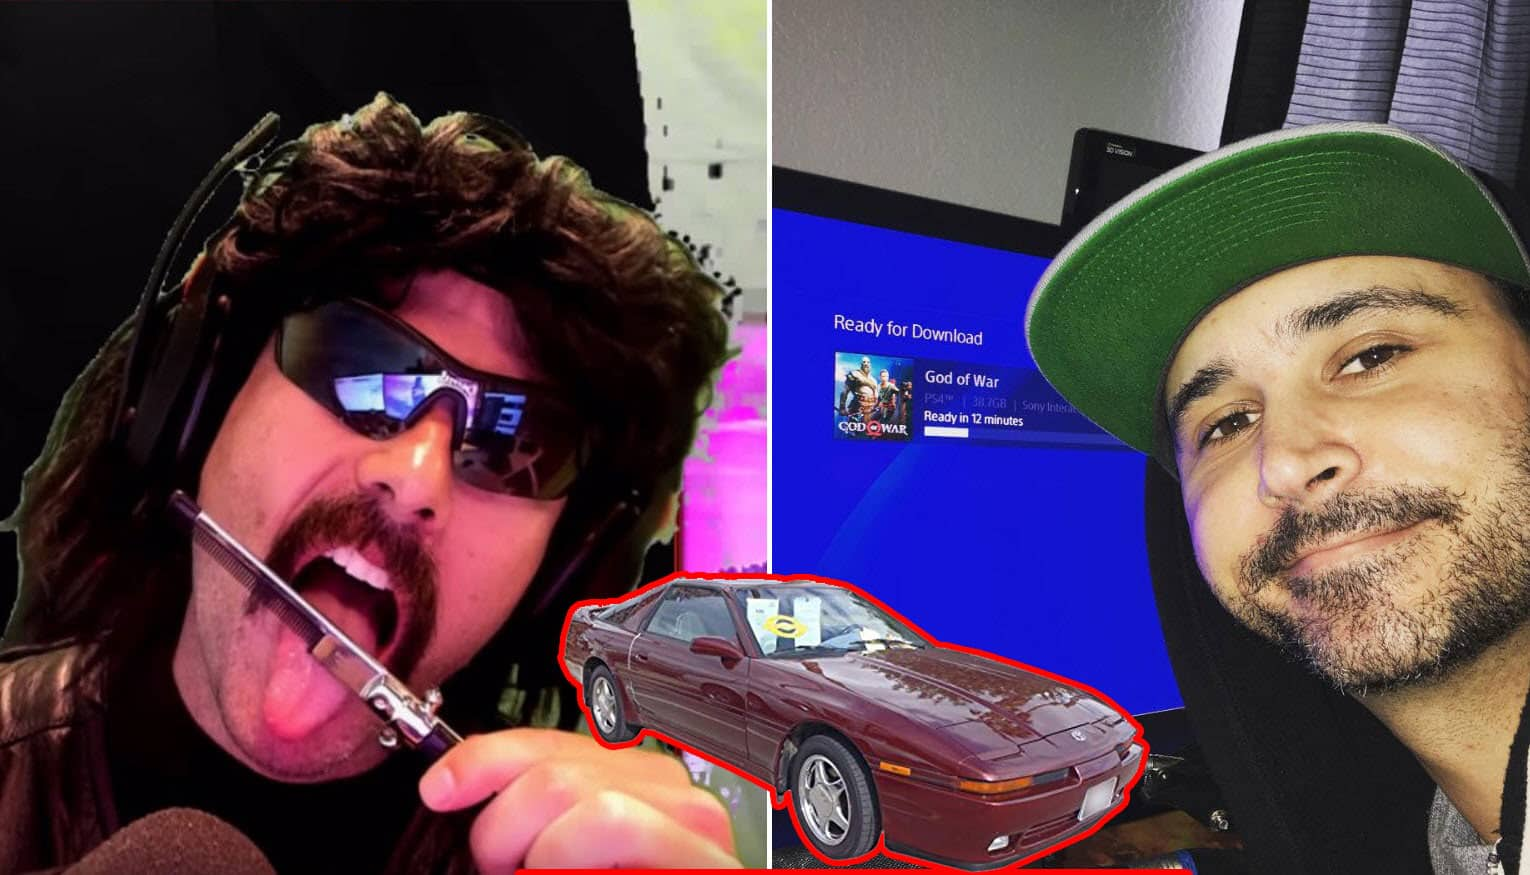 Dr Disrespect Throws Shade at Summit1g. Says he Drives a Toyota Blackout